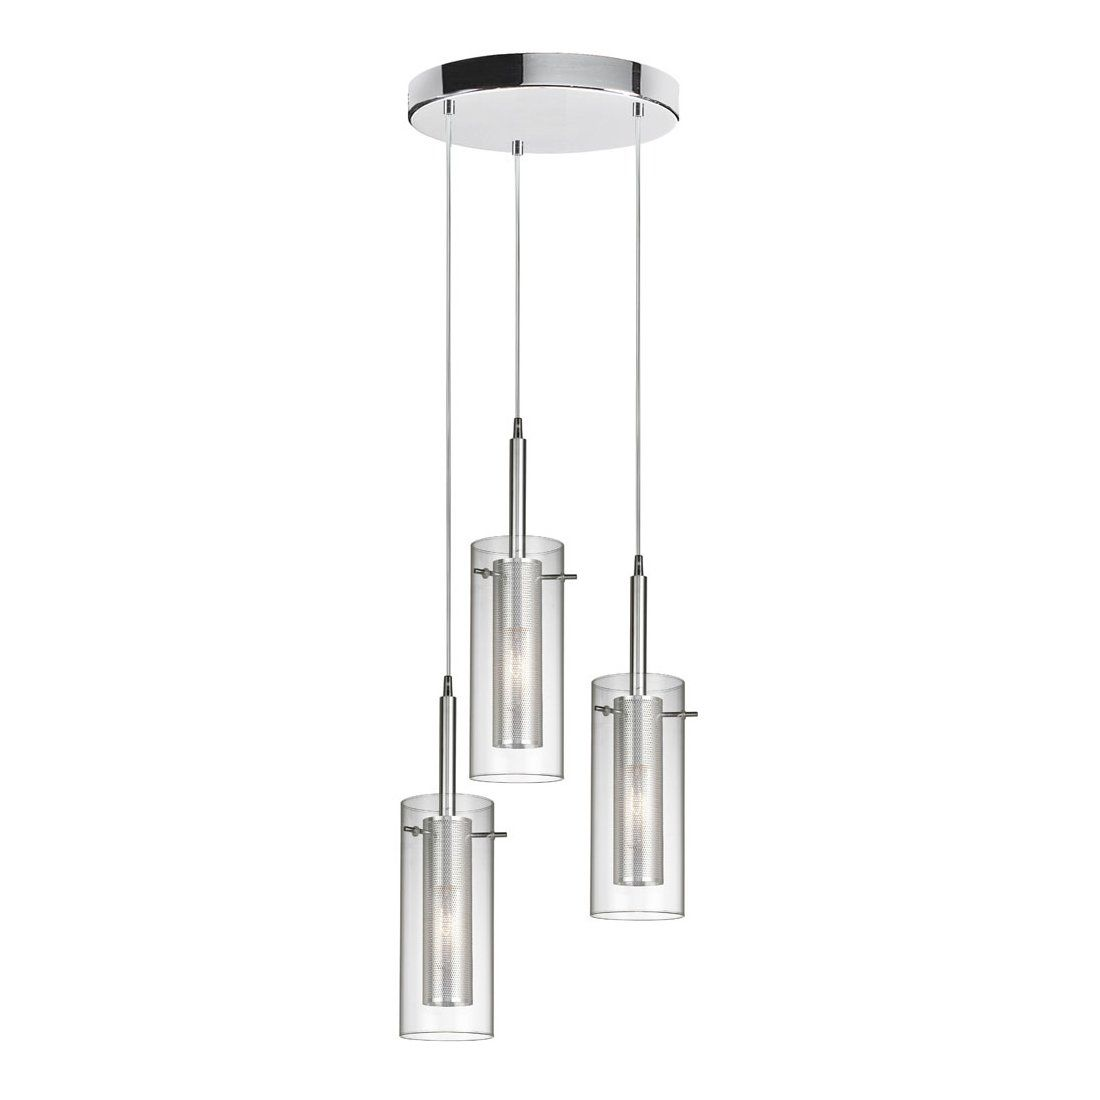 3 pendant light fixture mini pendant dainolite lighting 33963rcm light round canopyclear glass multilight pendant atg stores multi